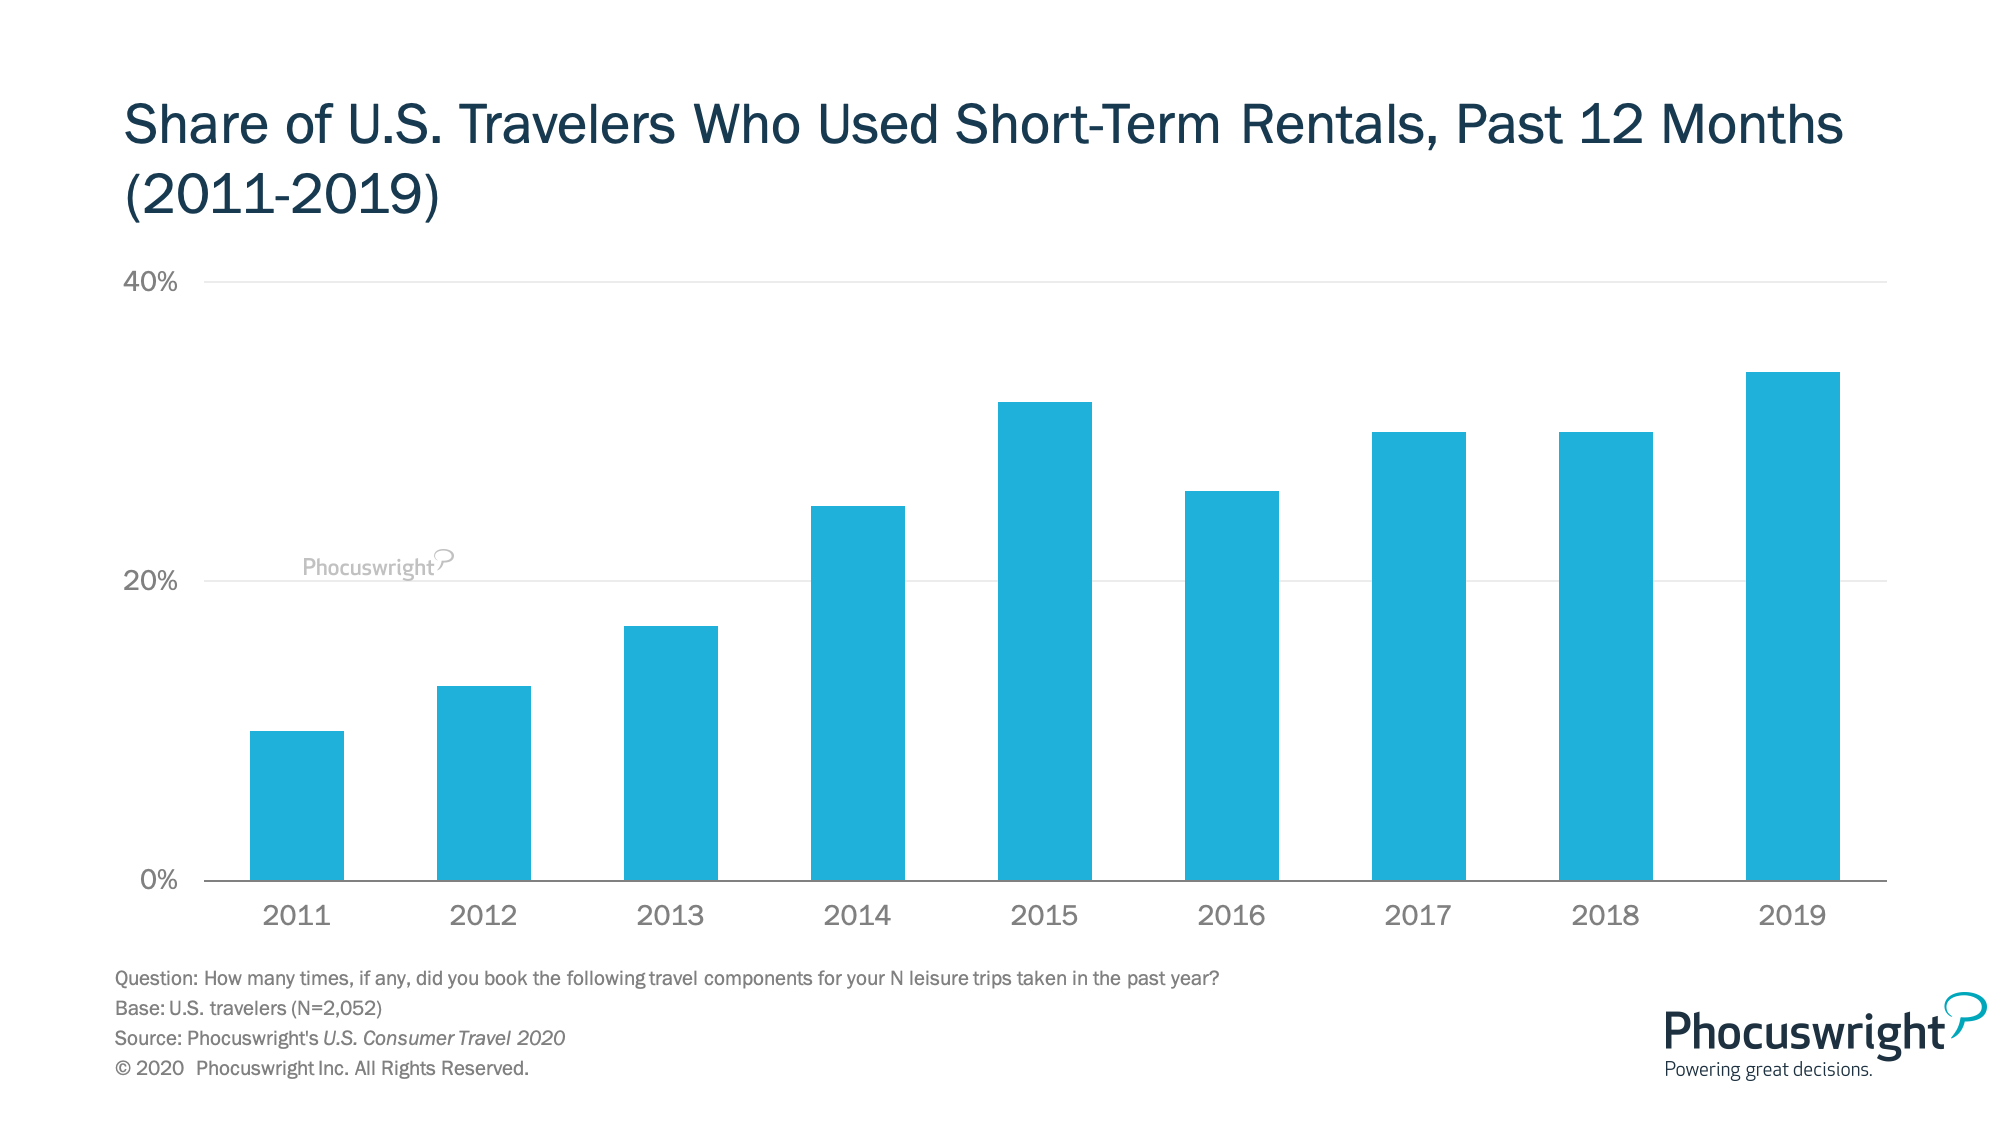 Share of U.S. Travelers Who Used Short-Term Rentals, Past 12 Months (2011-2019)